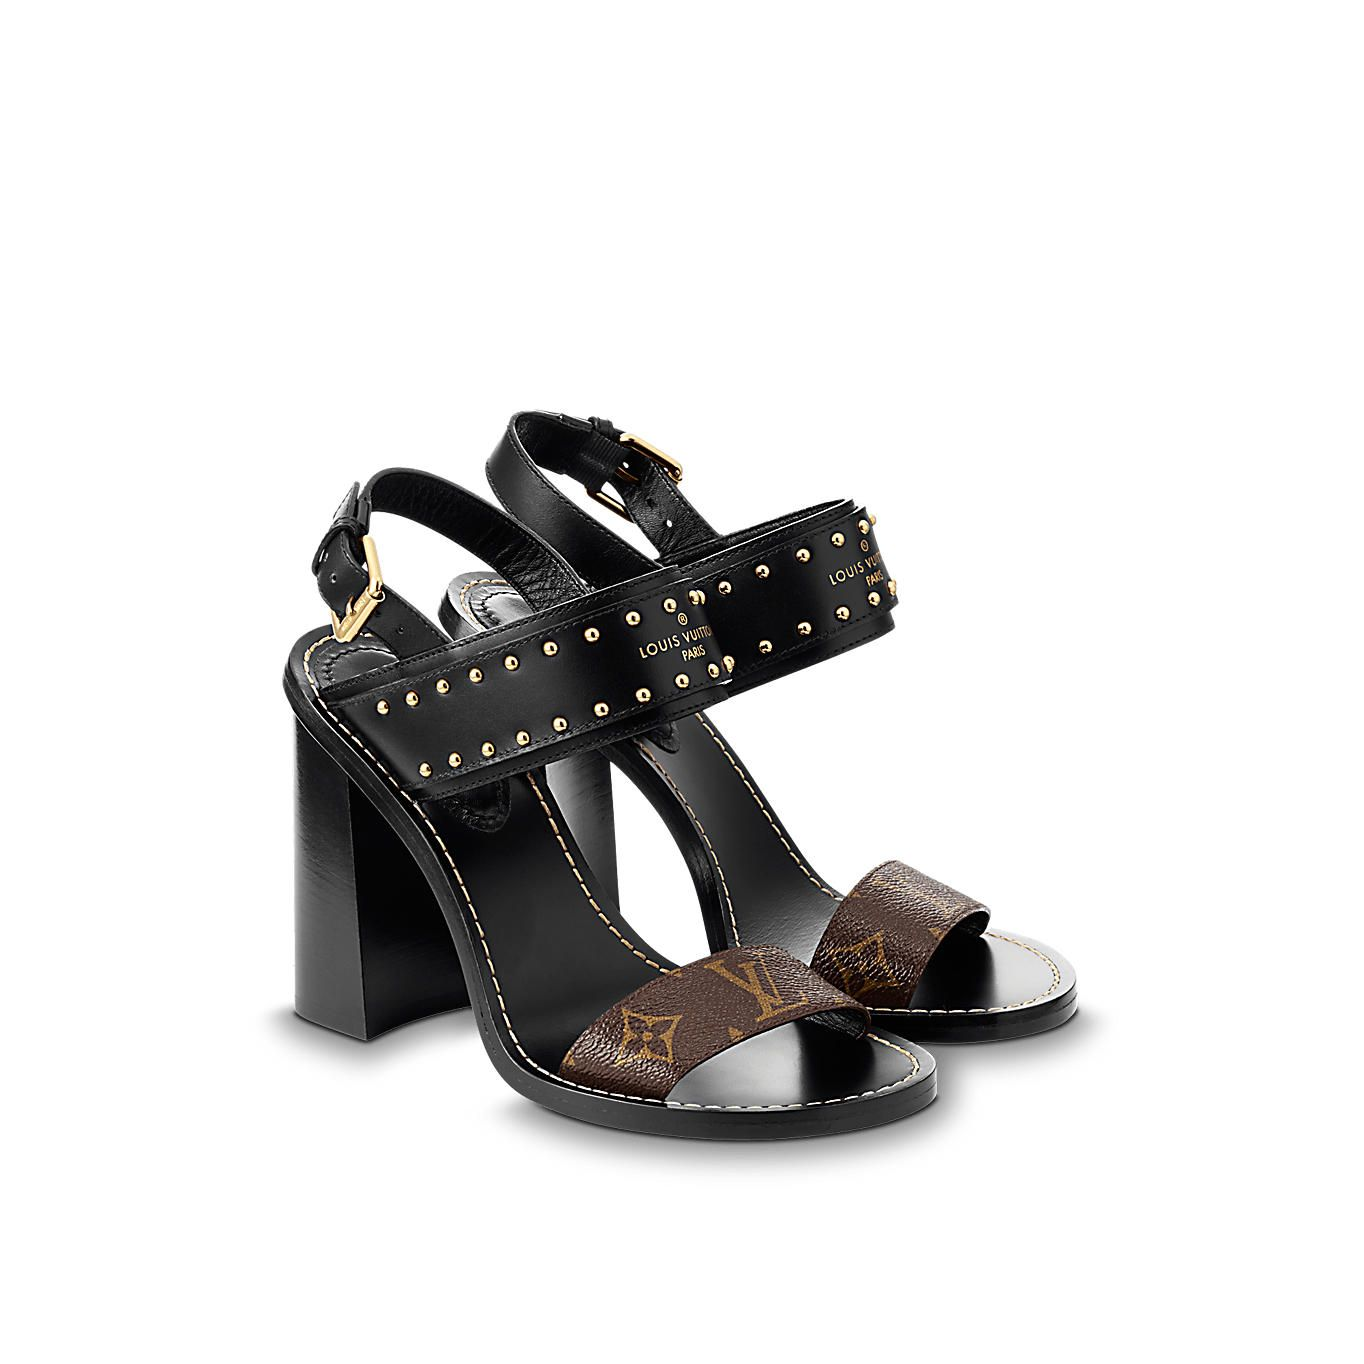 36469bb956f Nomad Sandal in Women s Shoes collections by Louis Vuitton